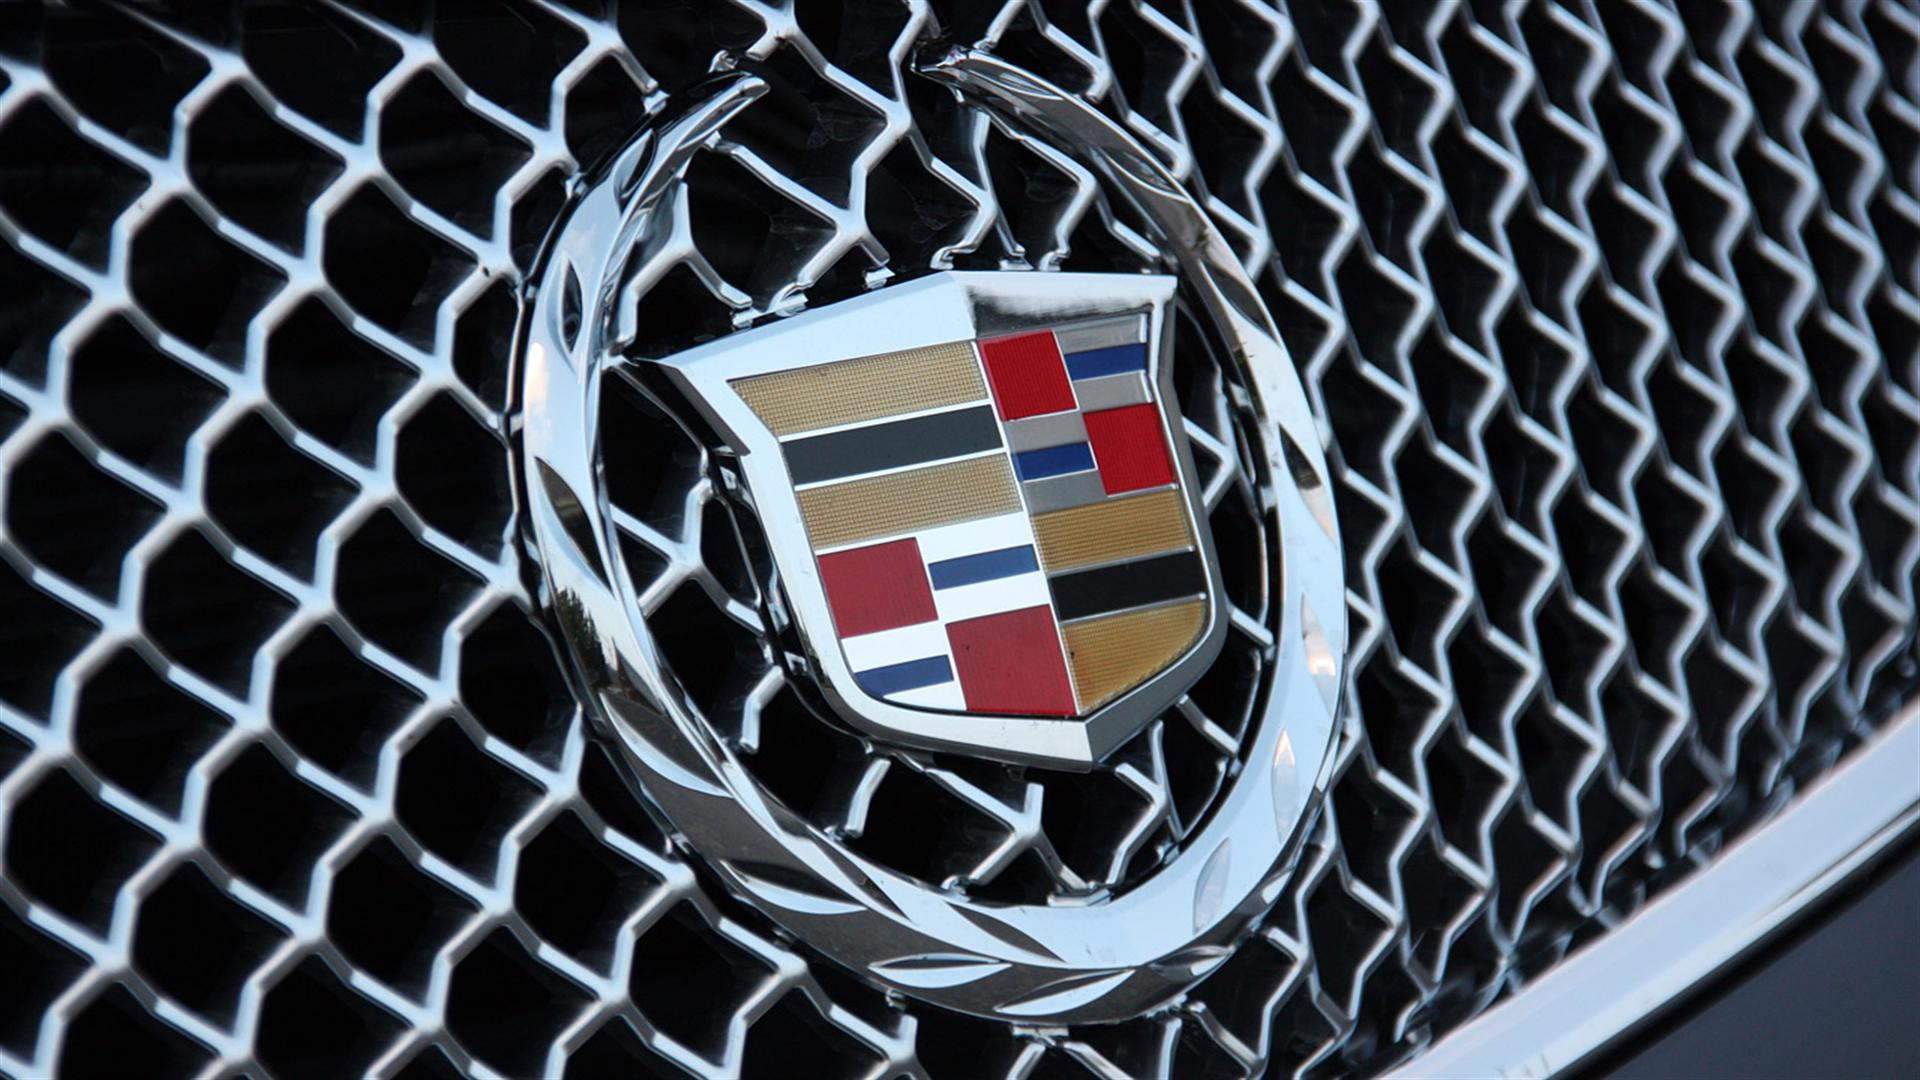 cadillac logo desktop wallpaper 933